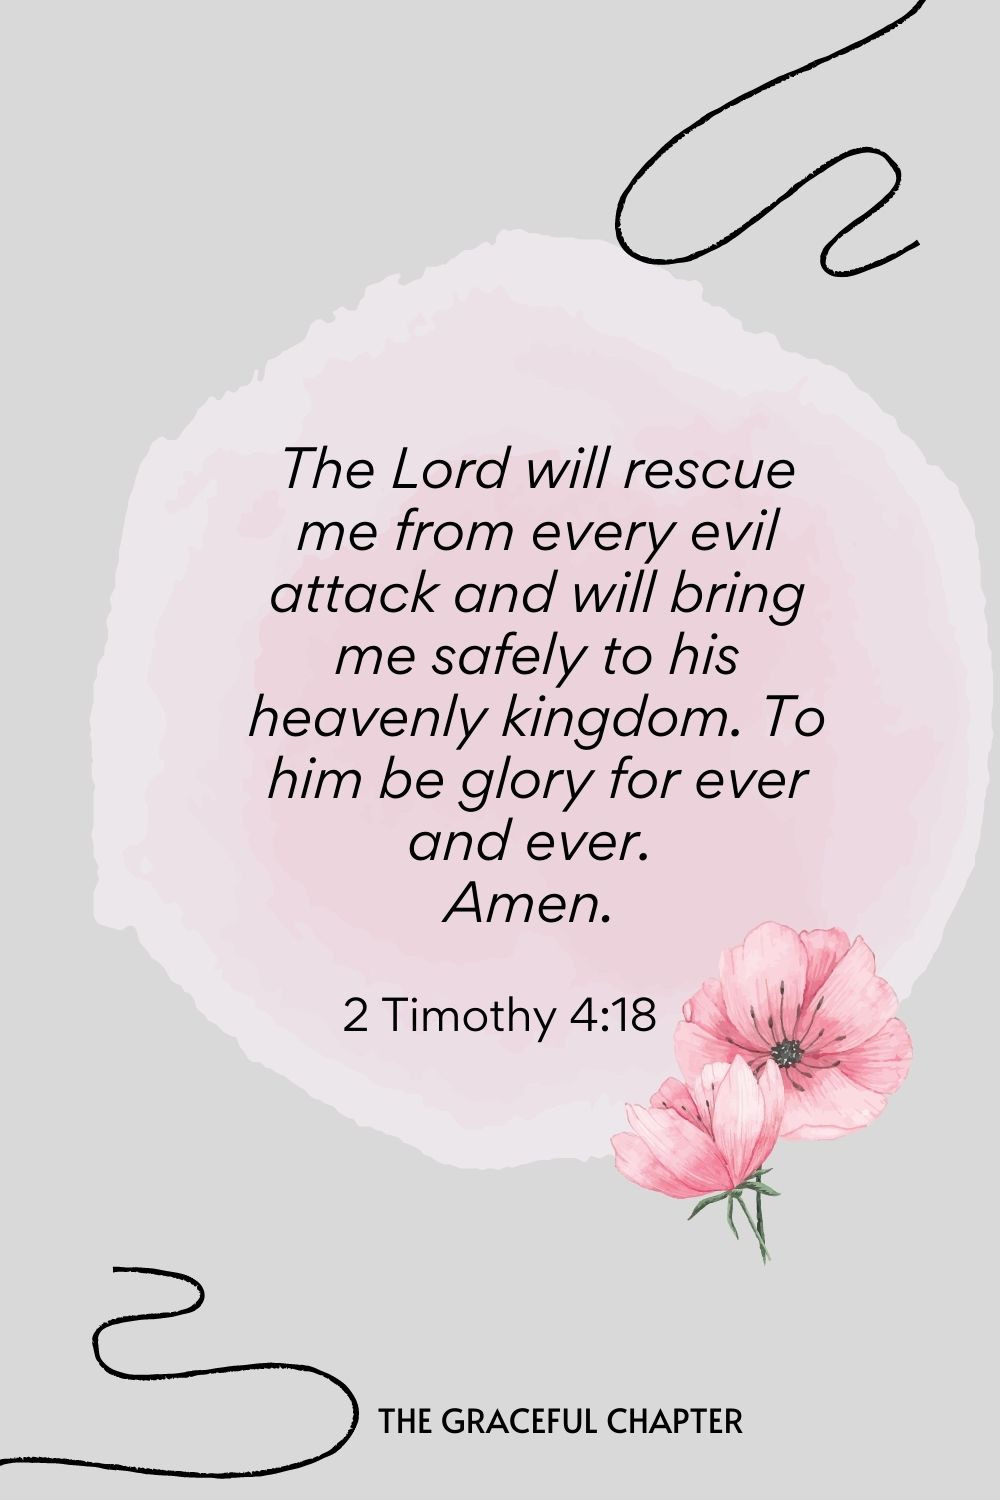 The Lord will rescue me from every evil attack and will bring me safely to his heavenly kingdom. To him be glory for ever and ever. Amen.  2 Timothy 4:18